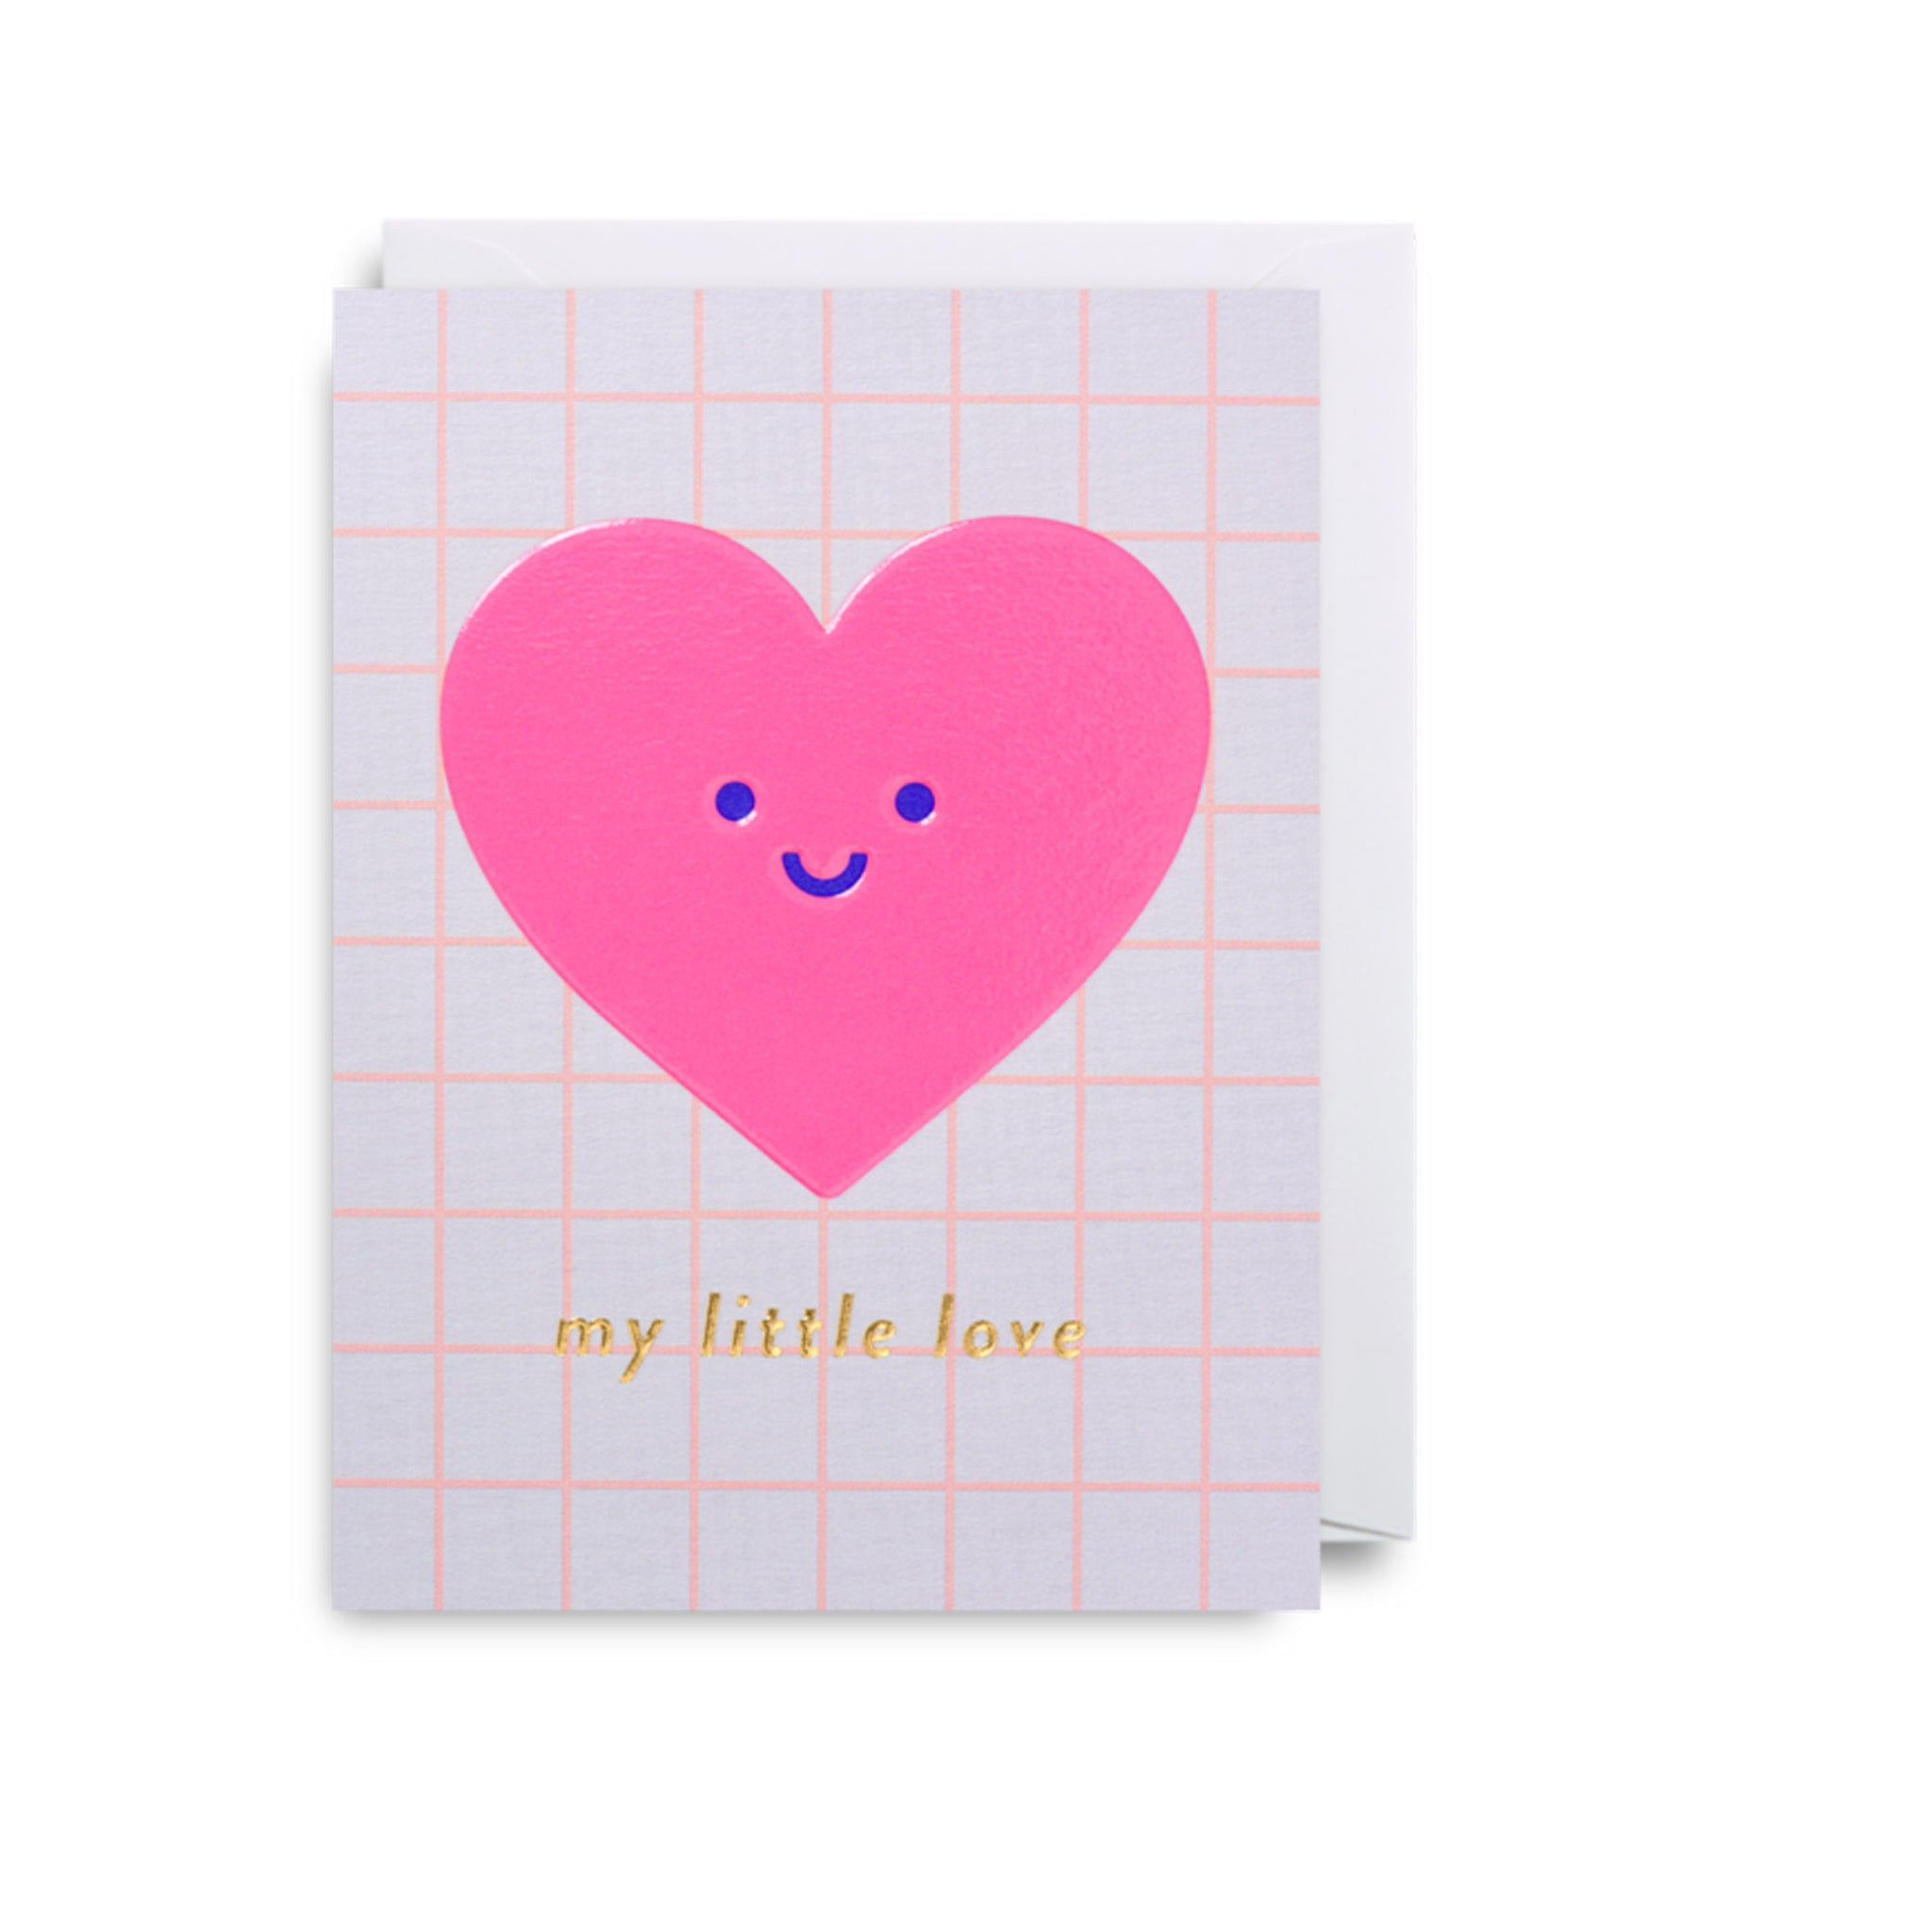 'My Little Love' - Mini Card